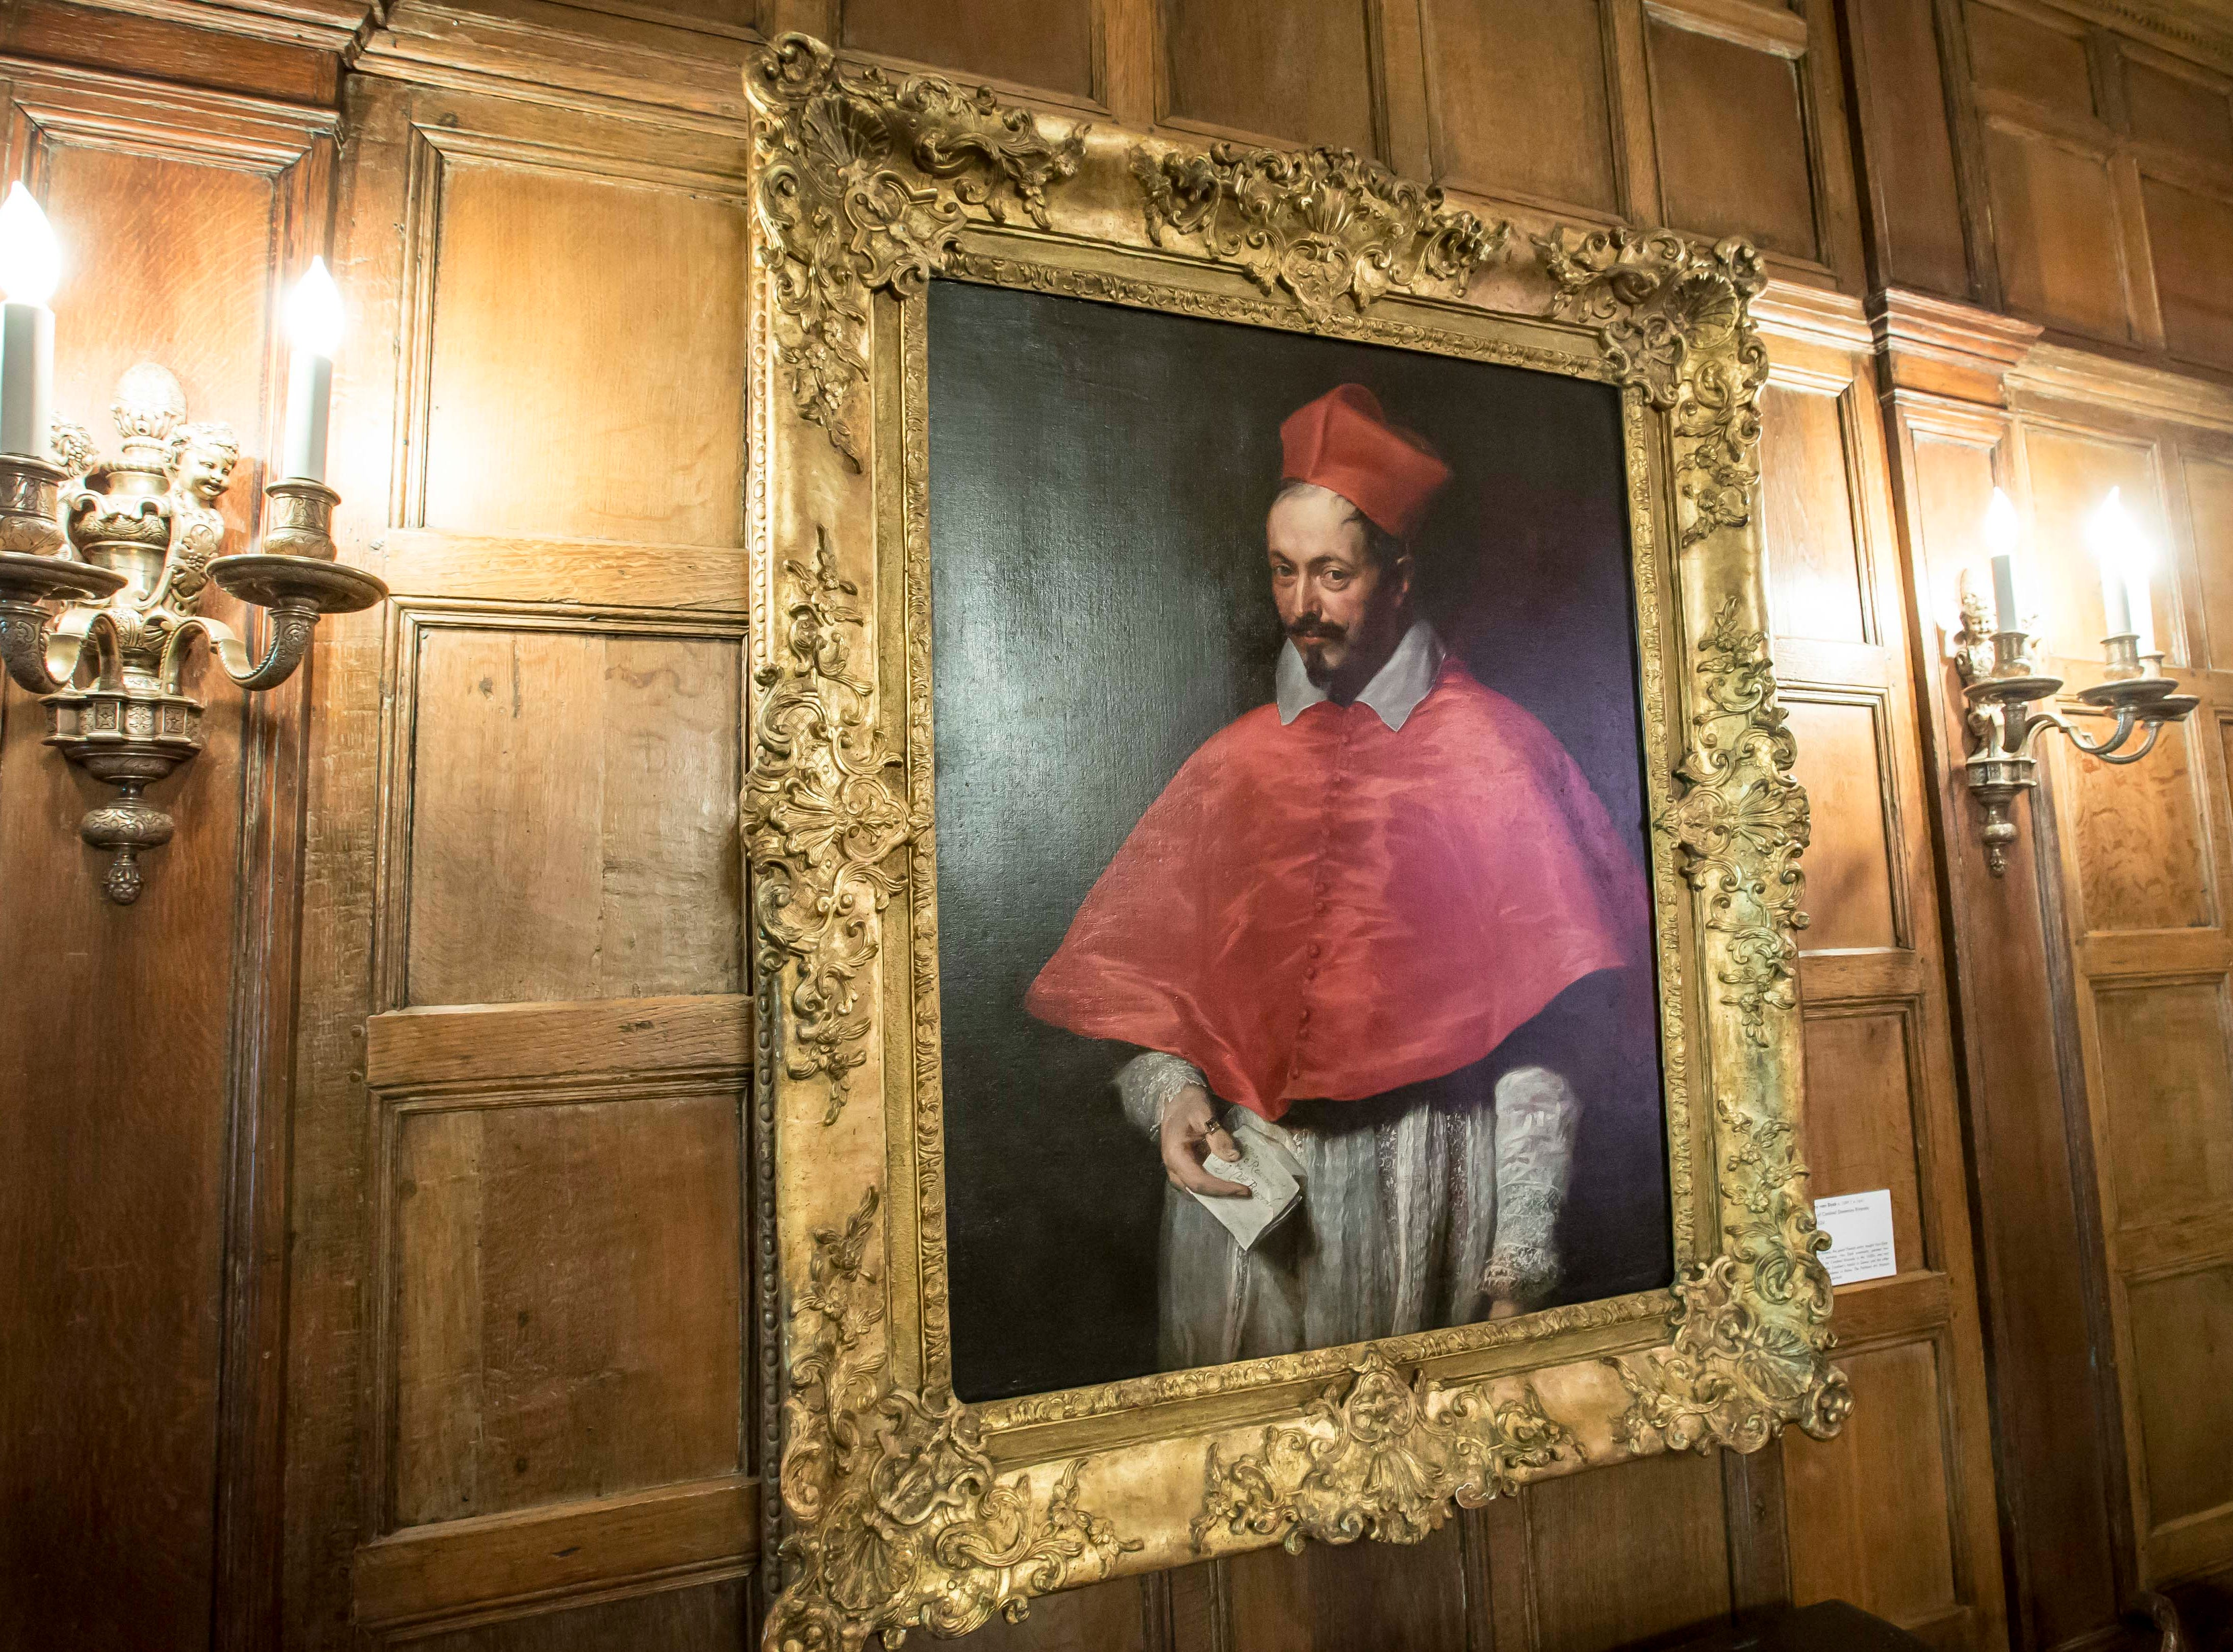 One of the most important paintings in the